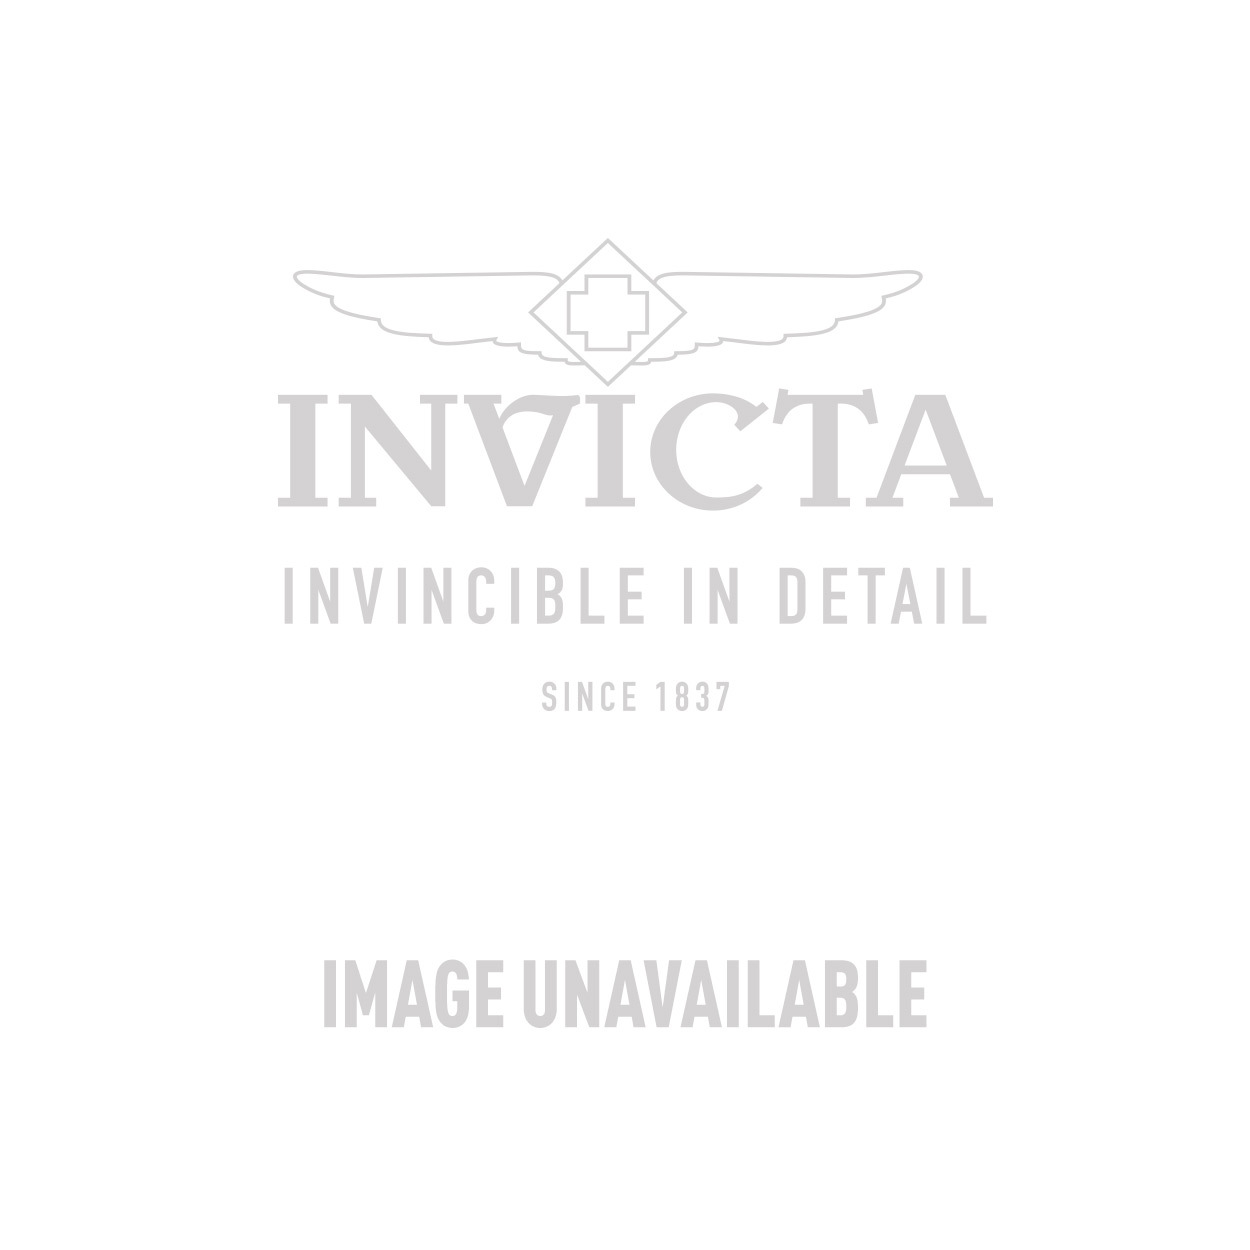 Invicta S1 Rally Quartz Watch - Stainless Steel case with Grey tone Silicone band - Model 90155